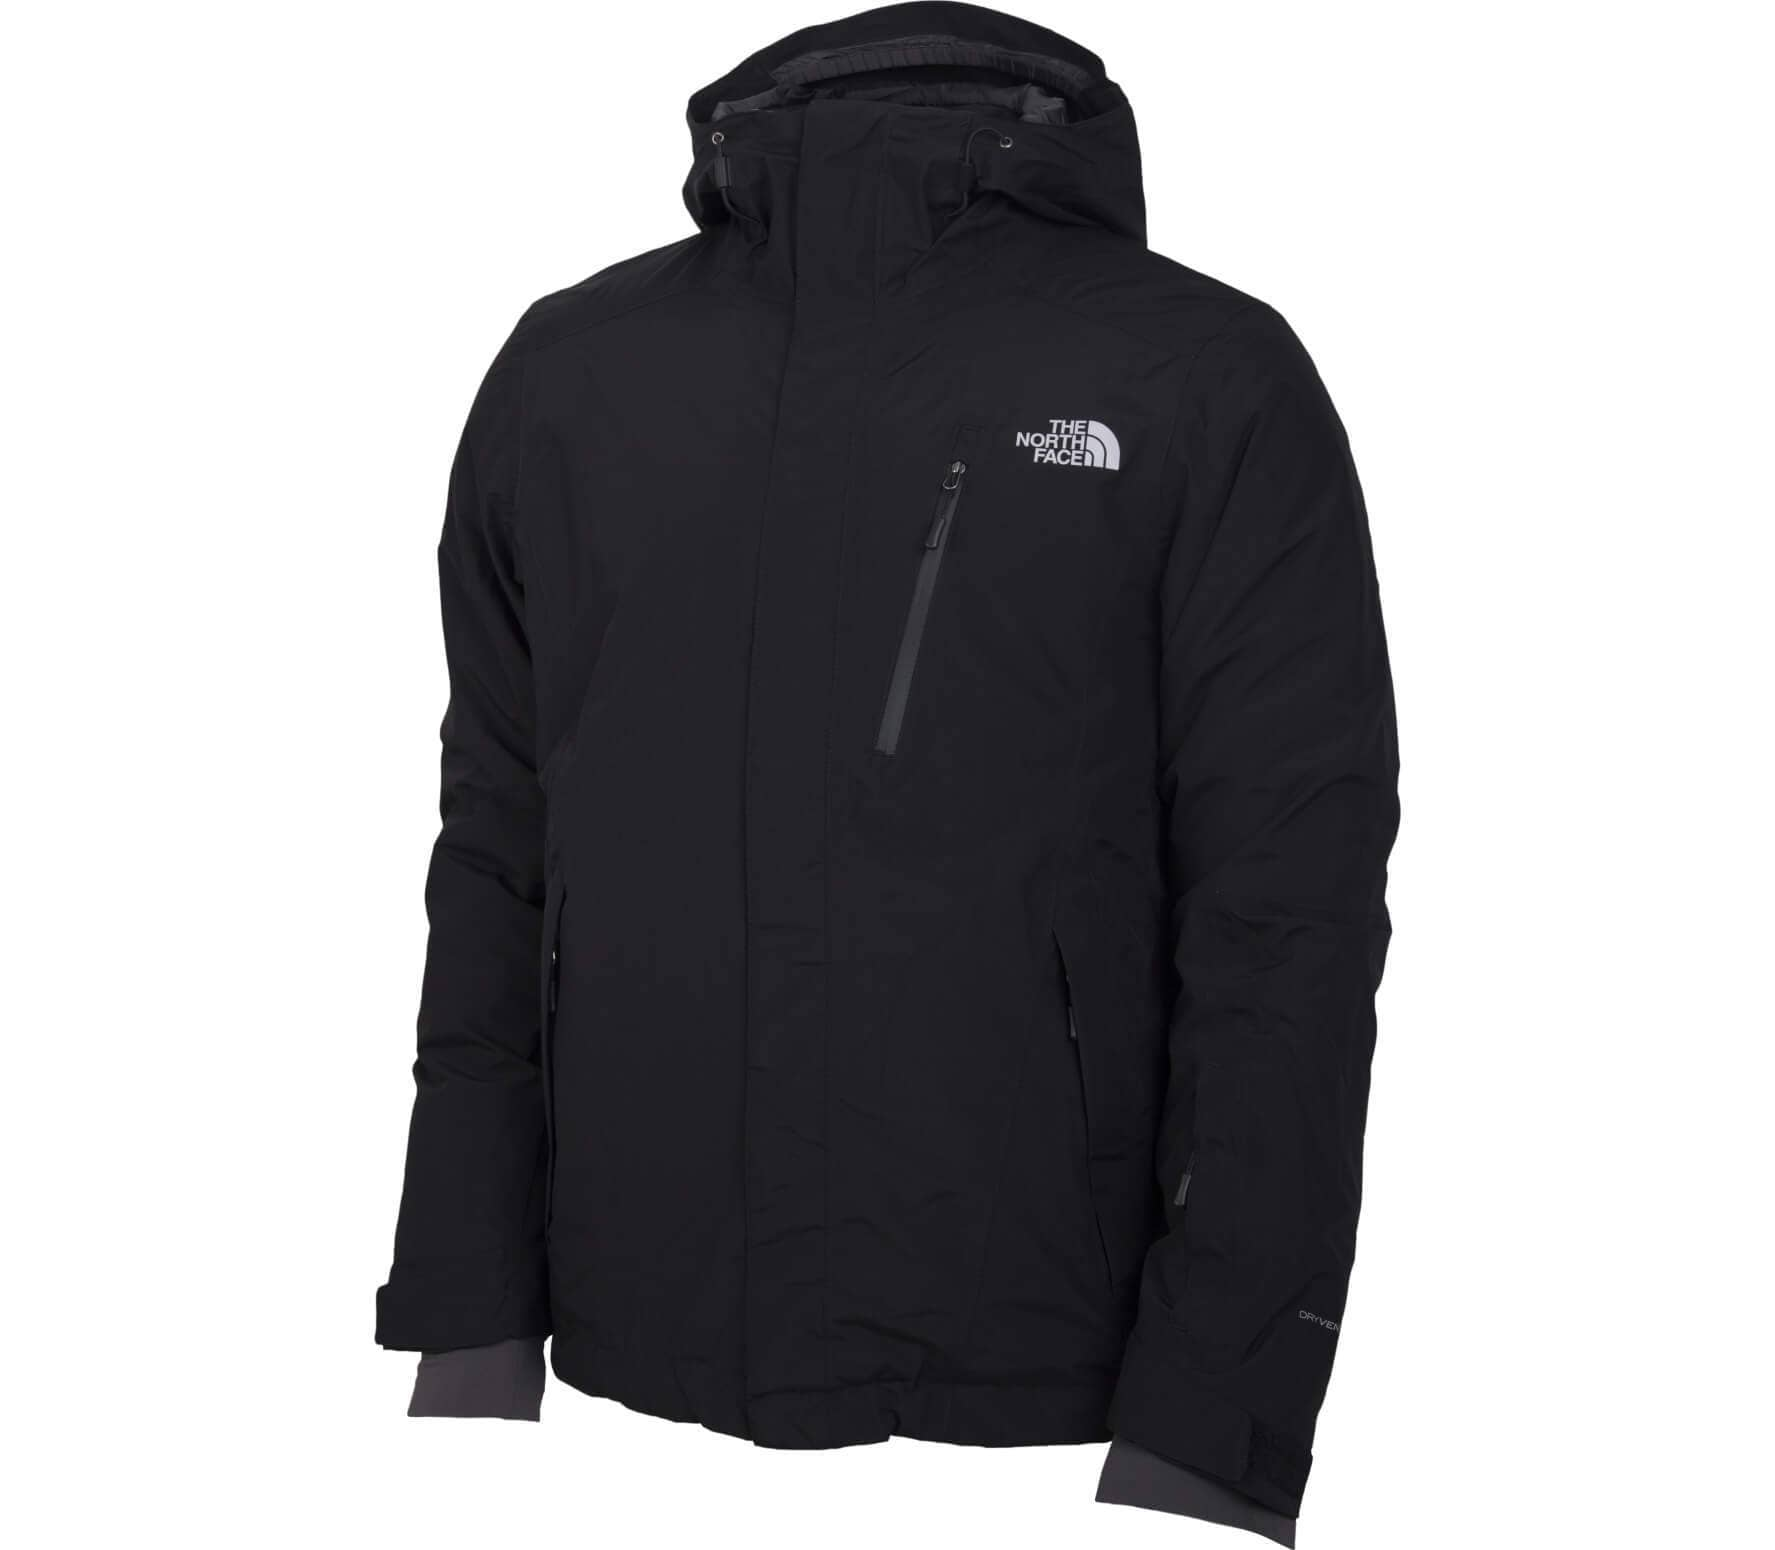 The North Face - Descendit Uomo Giacca da sci (nero) compra online ... 39a3640d0c90